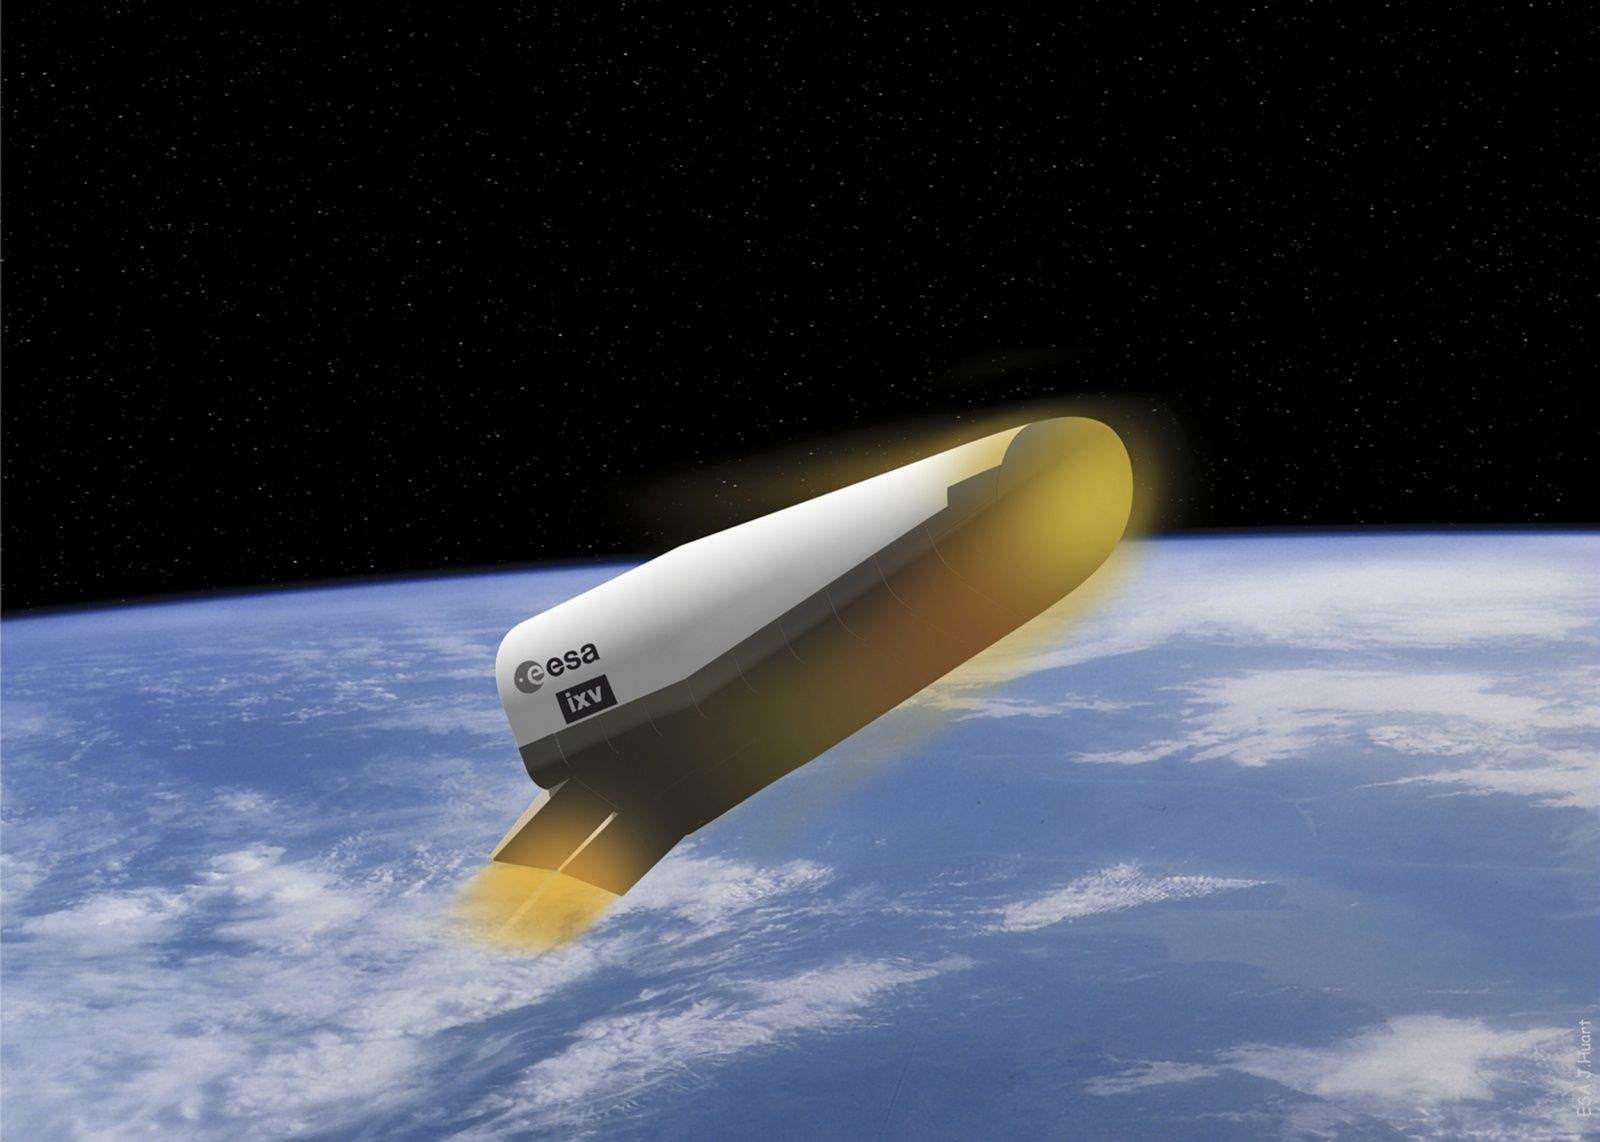 An illustration shows the European Space Agency's Spaceplane on re-entry. A test launch is scheduled for Feb. 11. Illustration: J. Huart/ESA